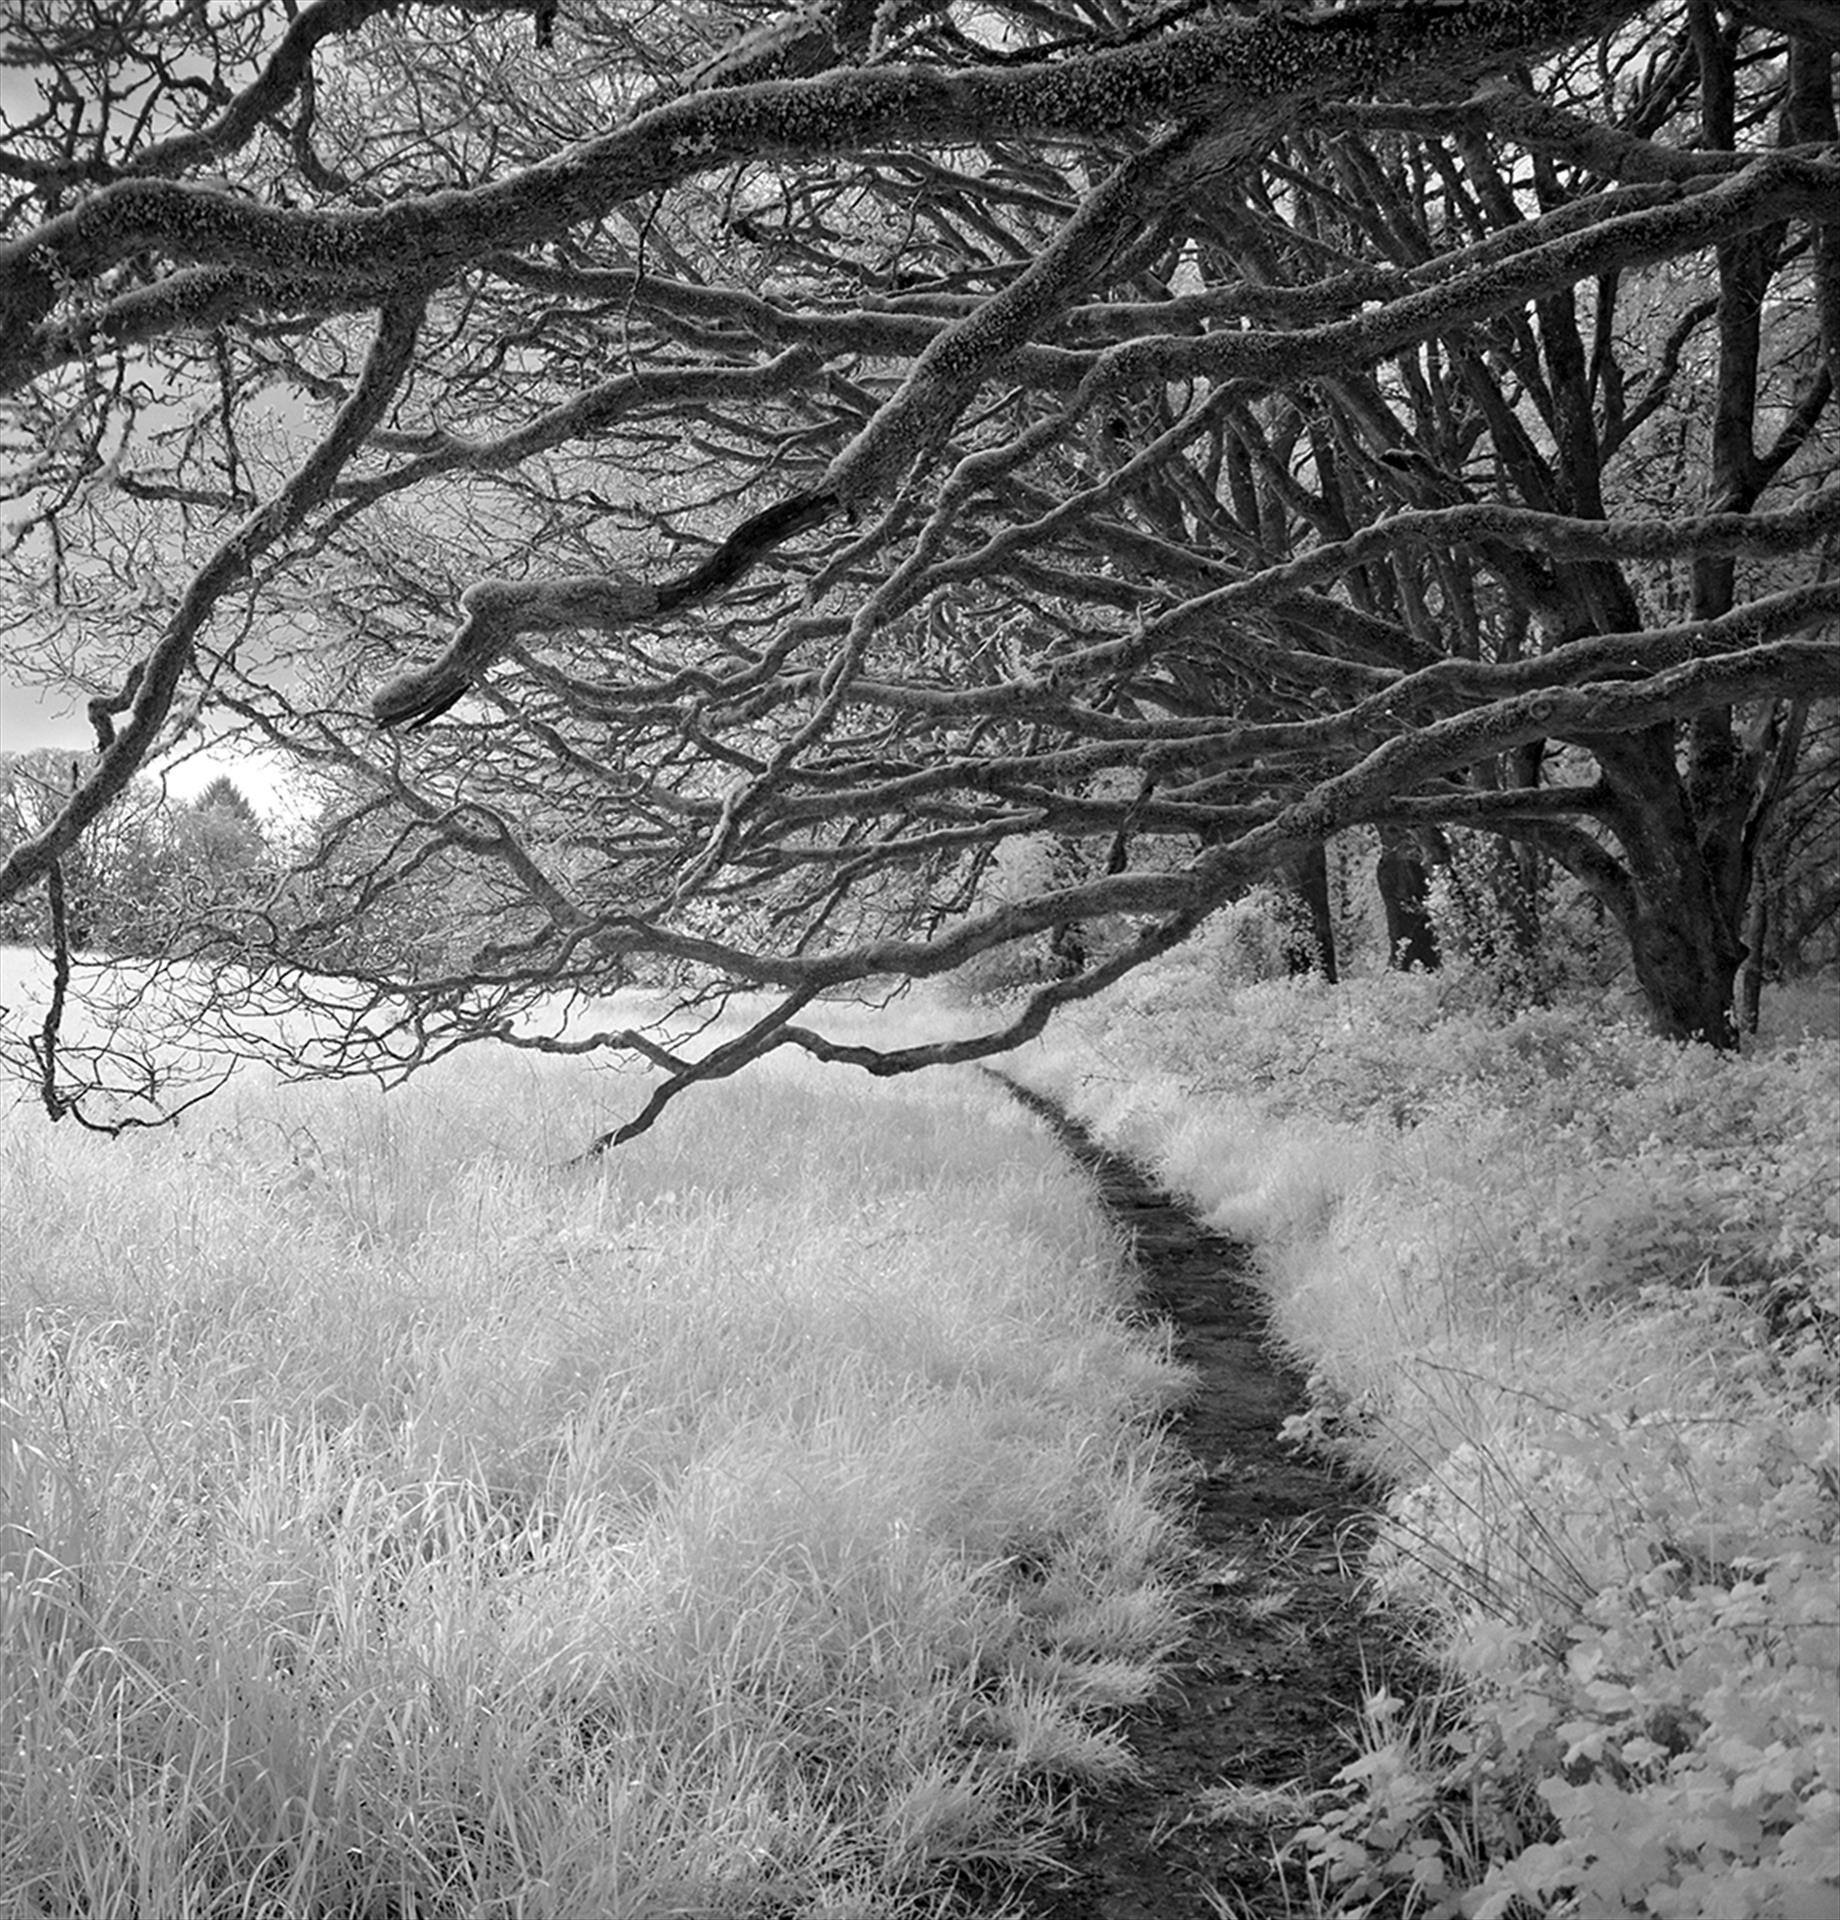 black and white photograph of path cutting through field under tree branches